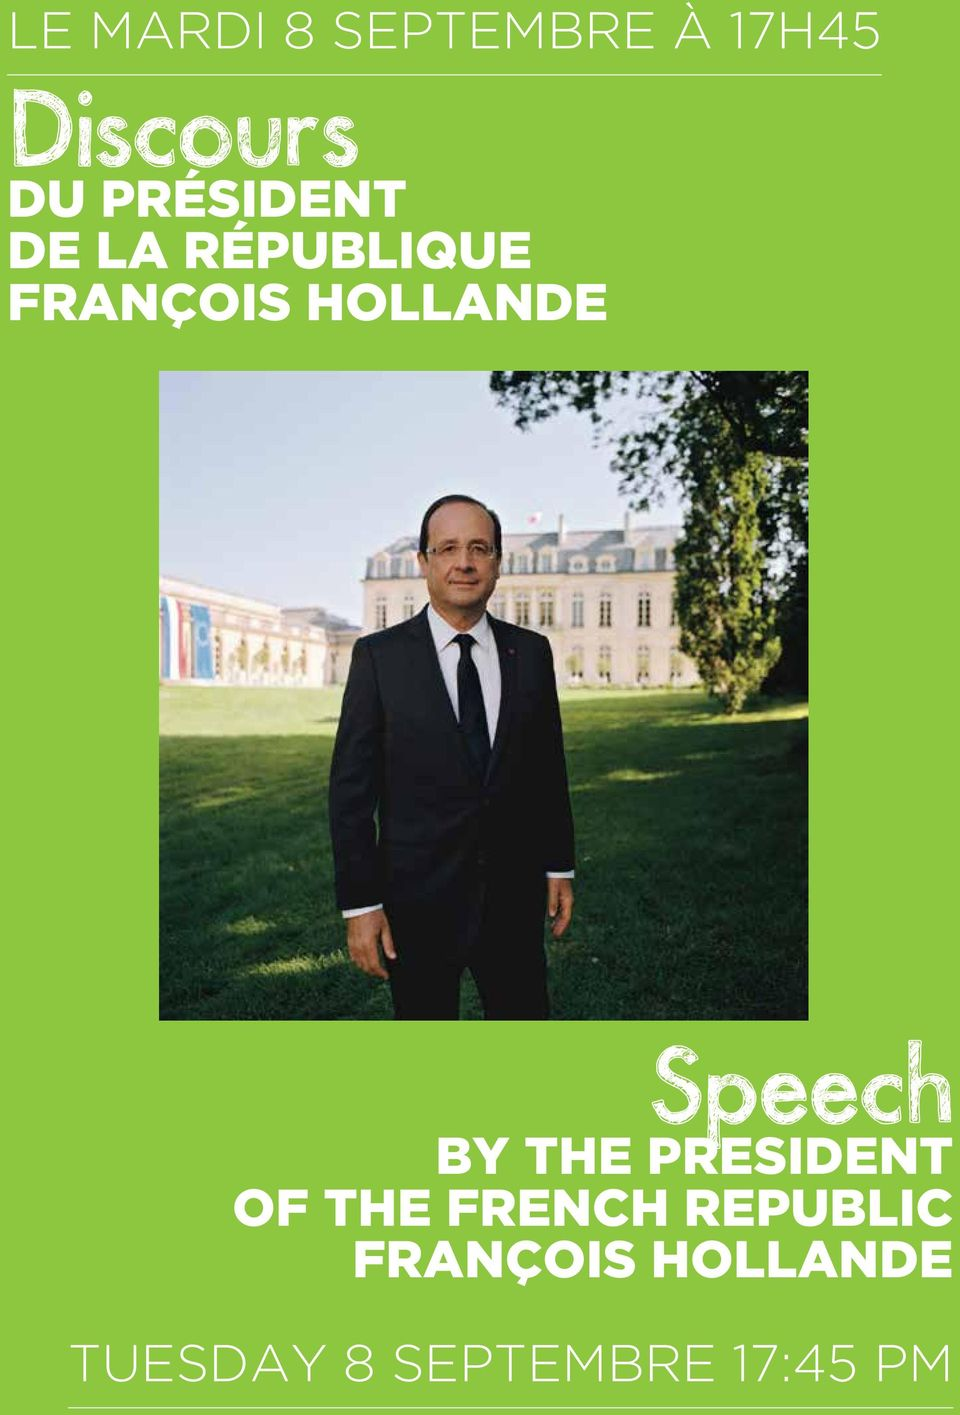 Speech By the President of the FRench